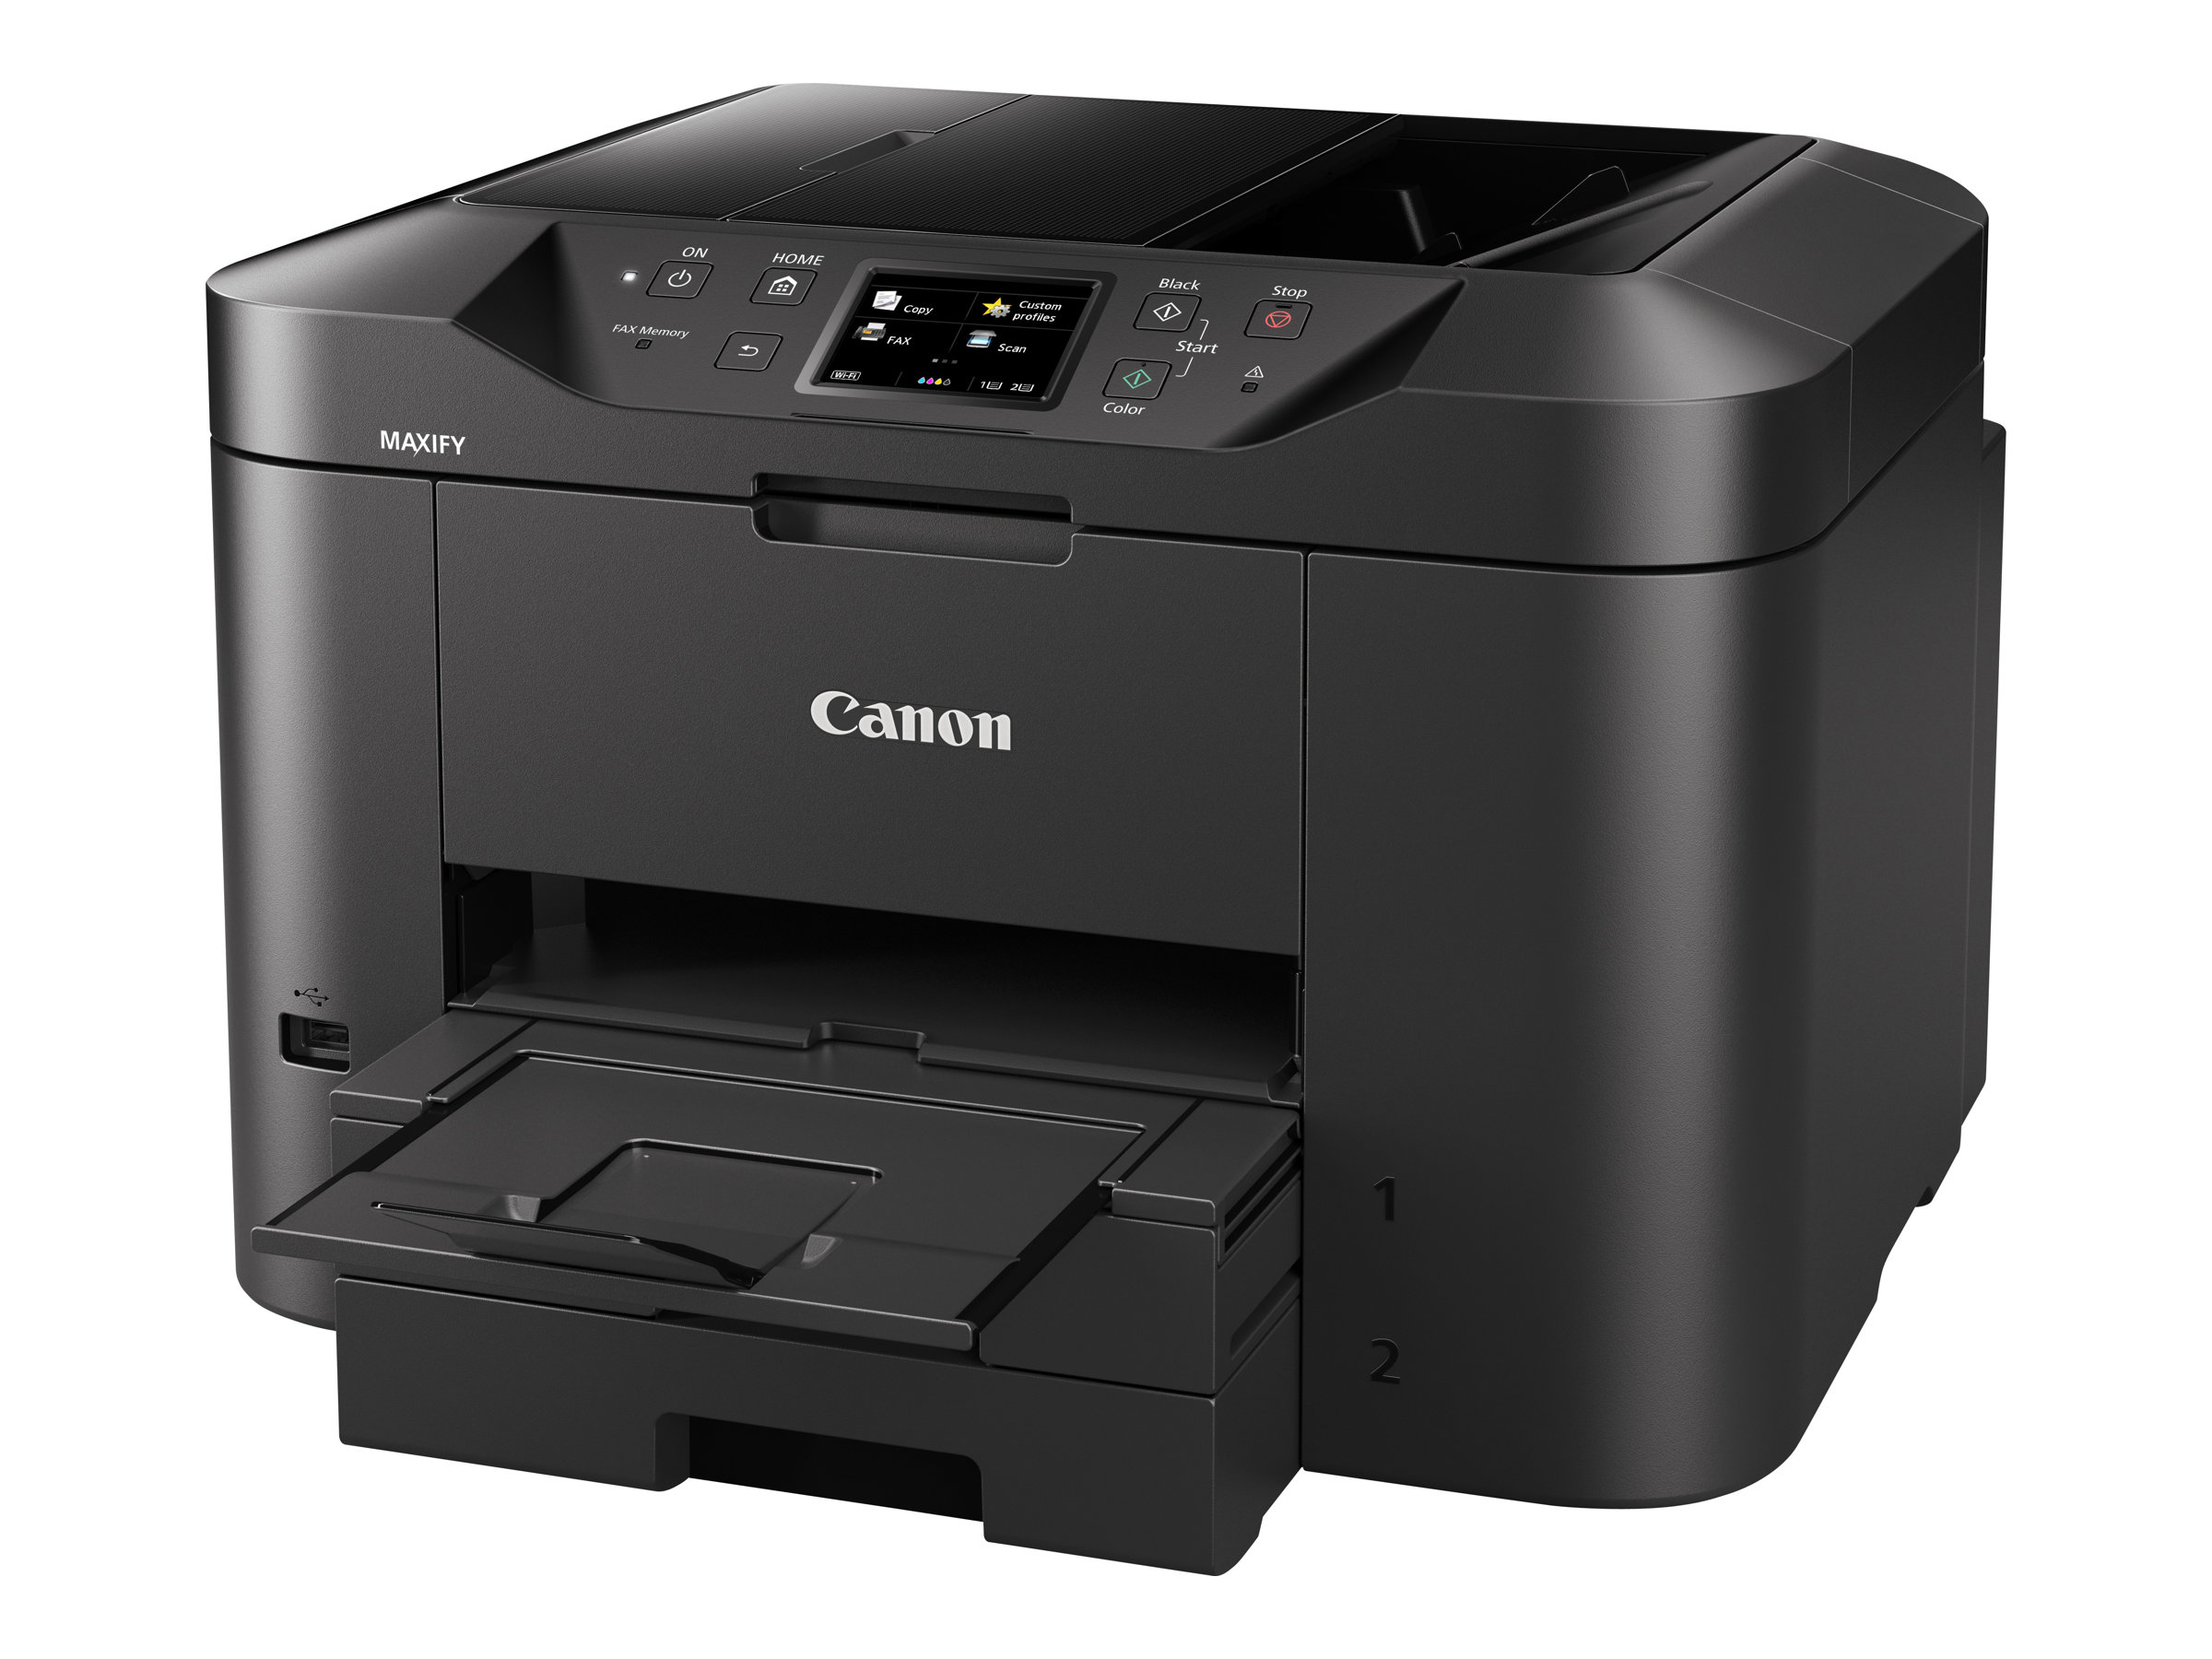 Canon MAXIFY MB2750 - Multifunktionsdrucker - Farbe - Tintenstrahl - A4 (210 x 297 mm), Legal (216 x 356 mm) (Original) - A4/Legal (Medien)